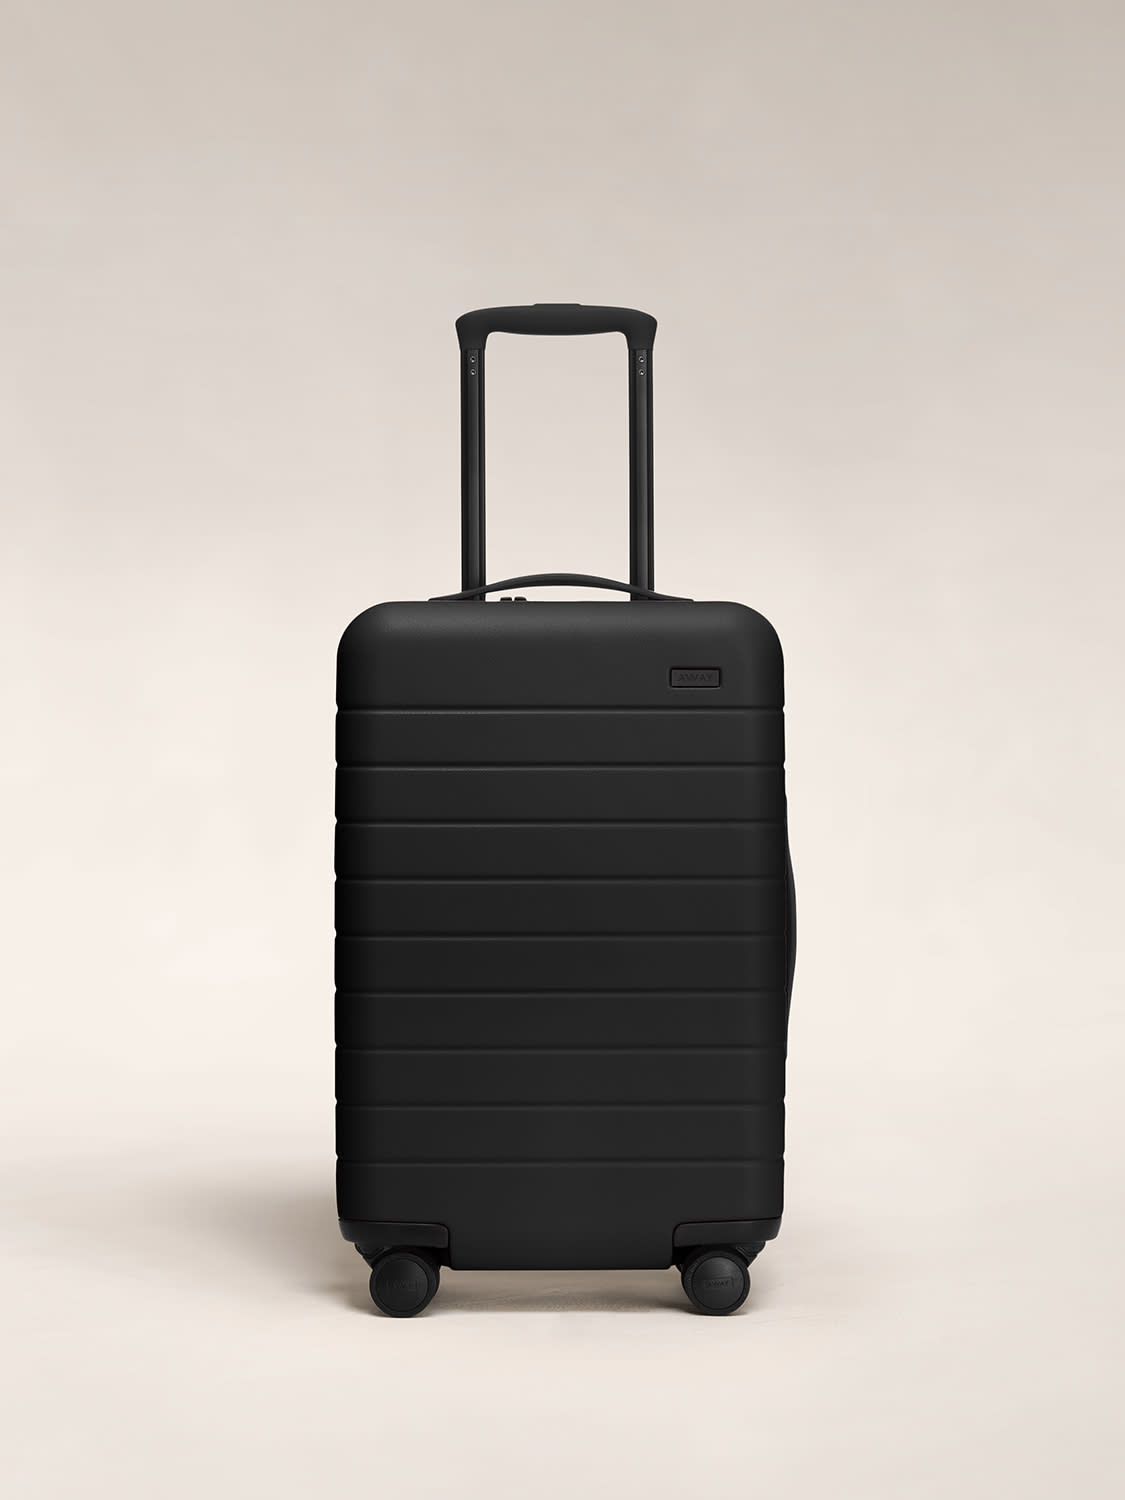 Front view of The Carry On hardside luggage in black